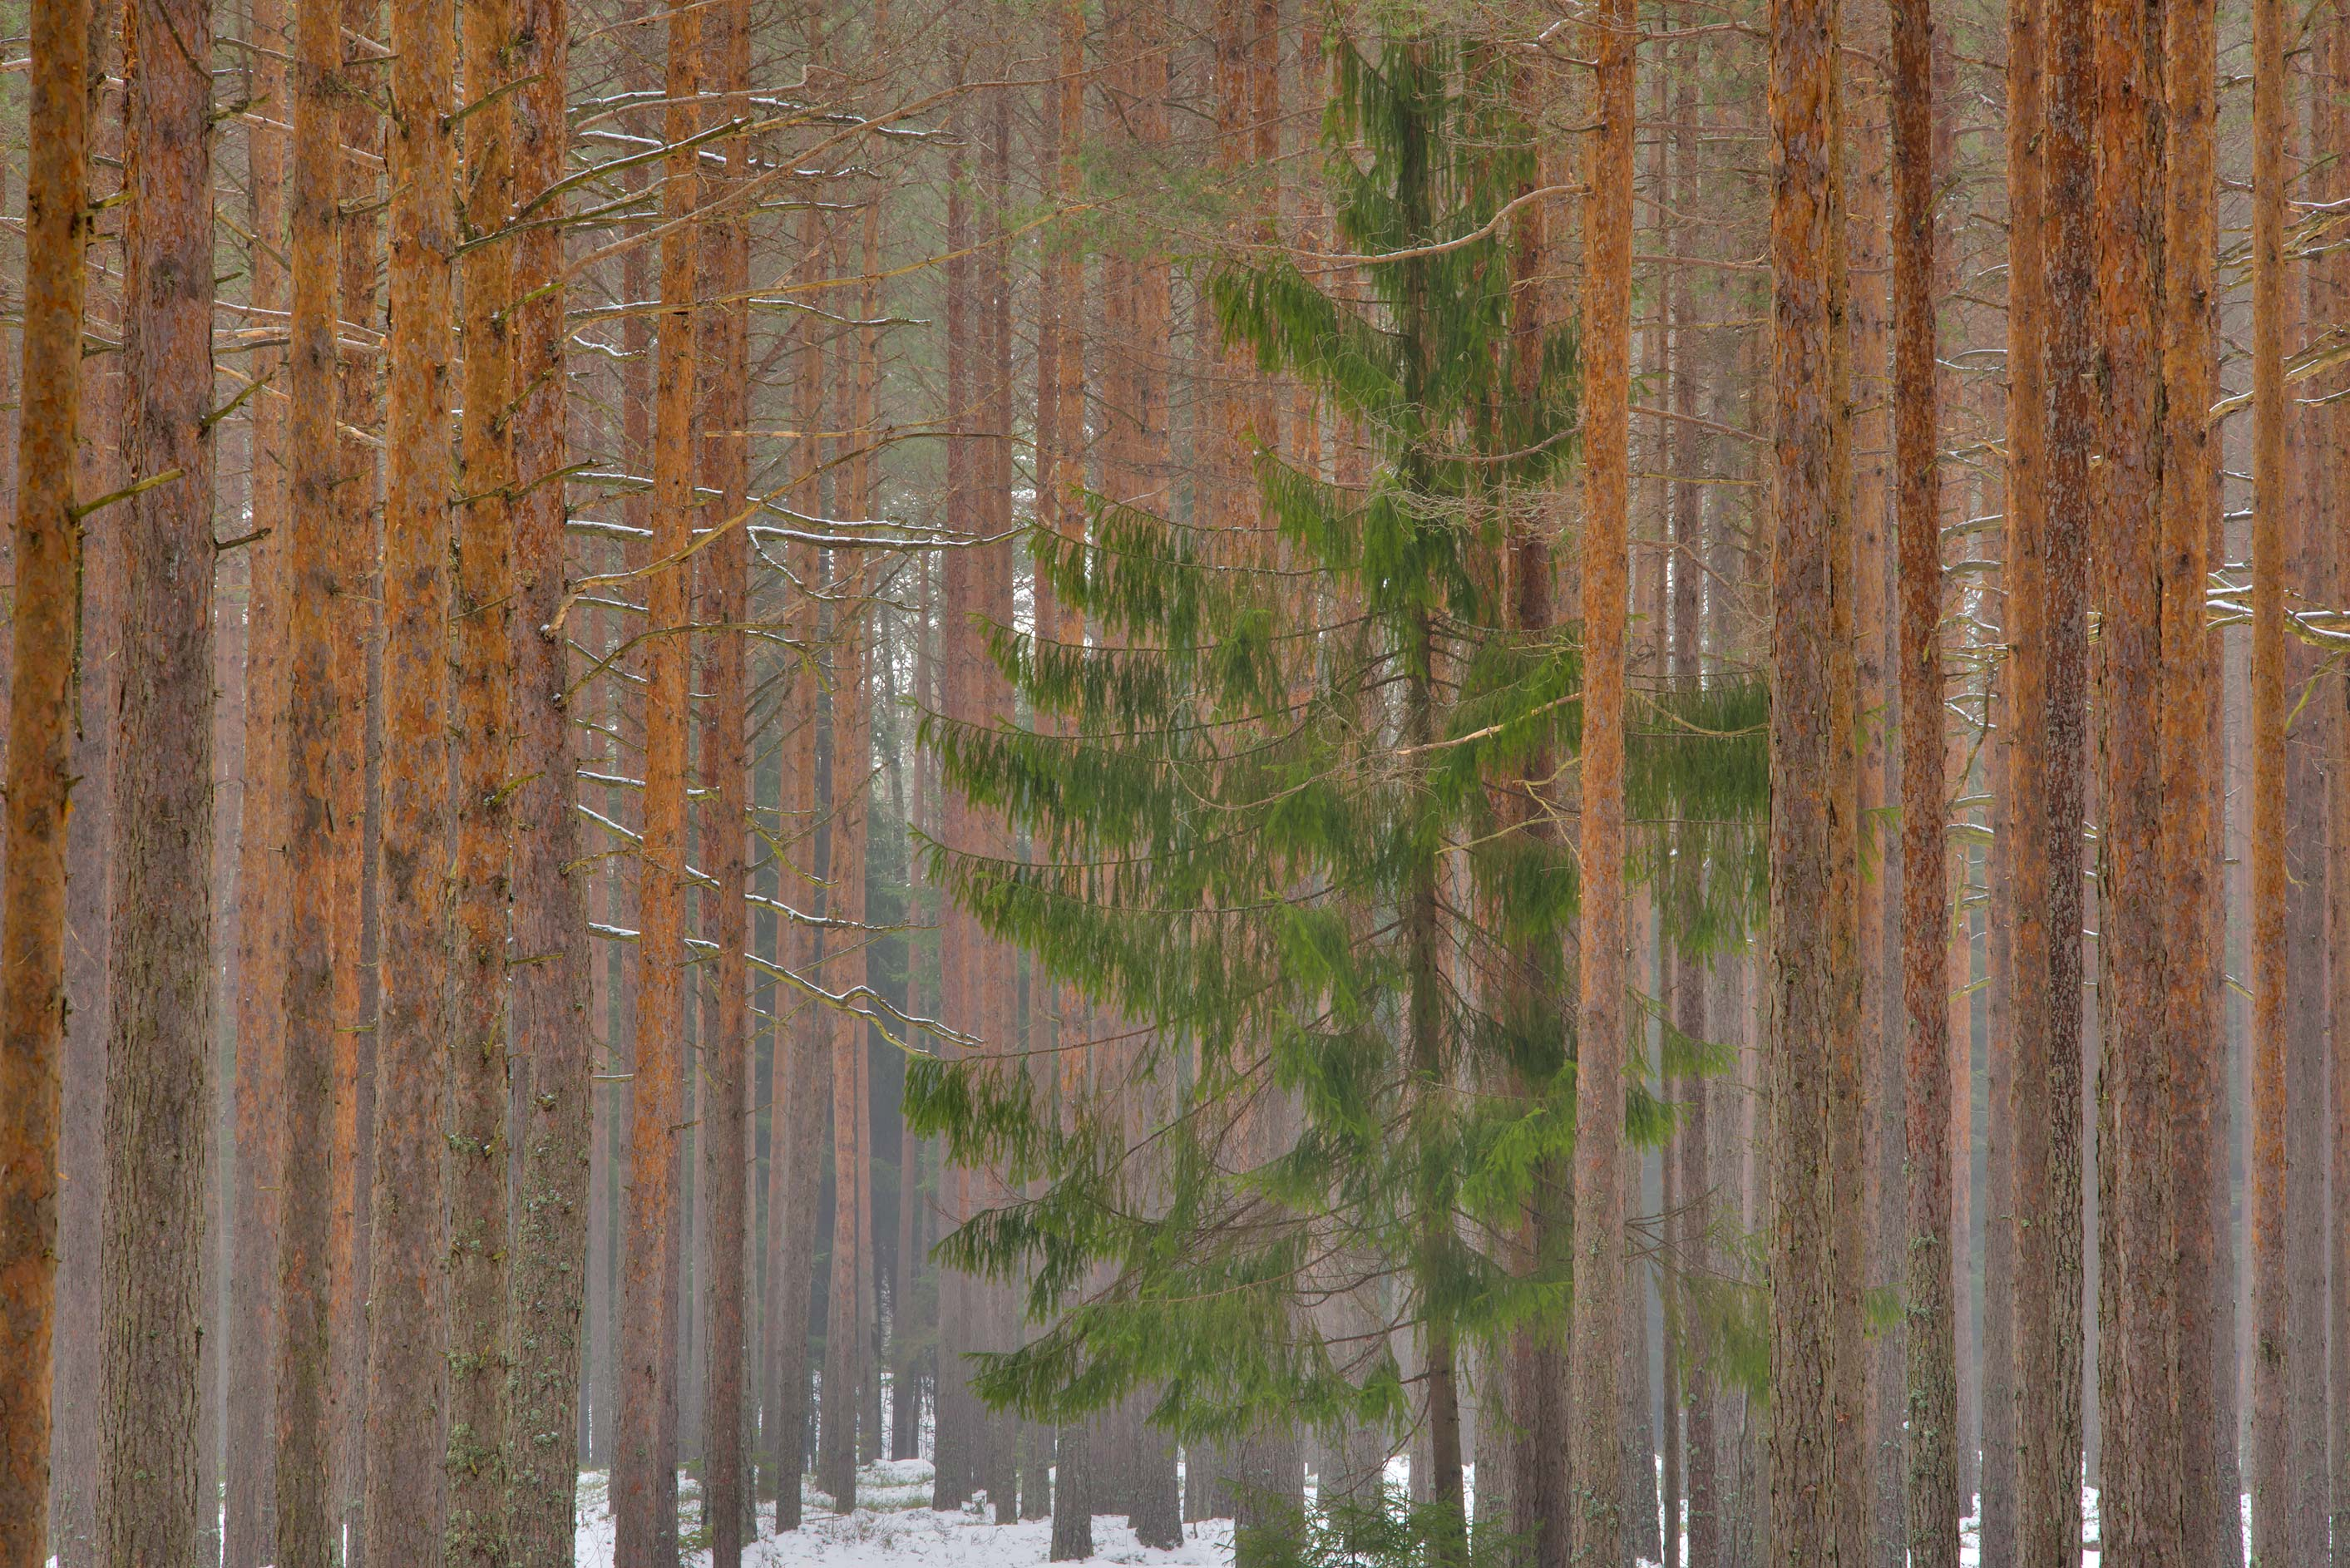 Solitary spruce tree among pines west from Dibuny-Pesochny area near St.Petersburg. Russia